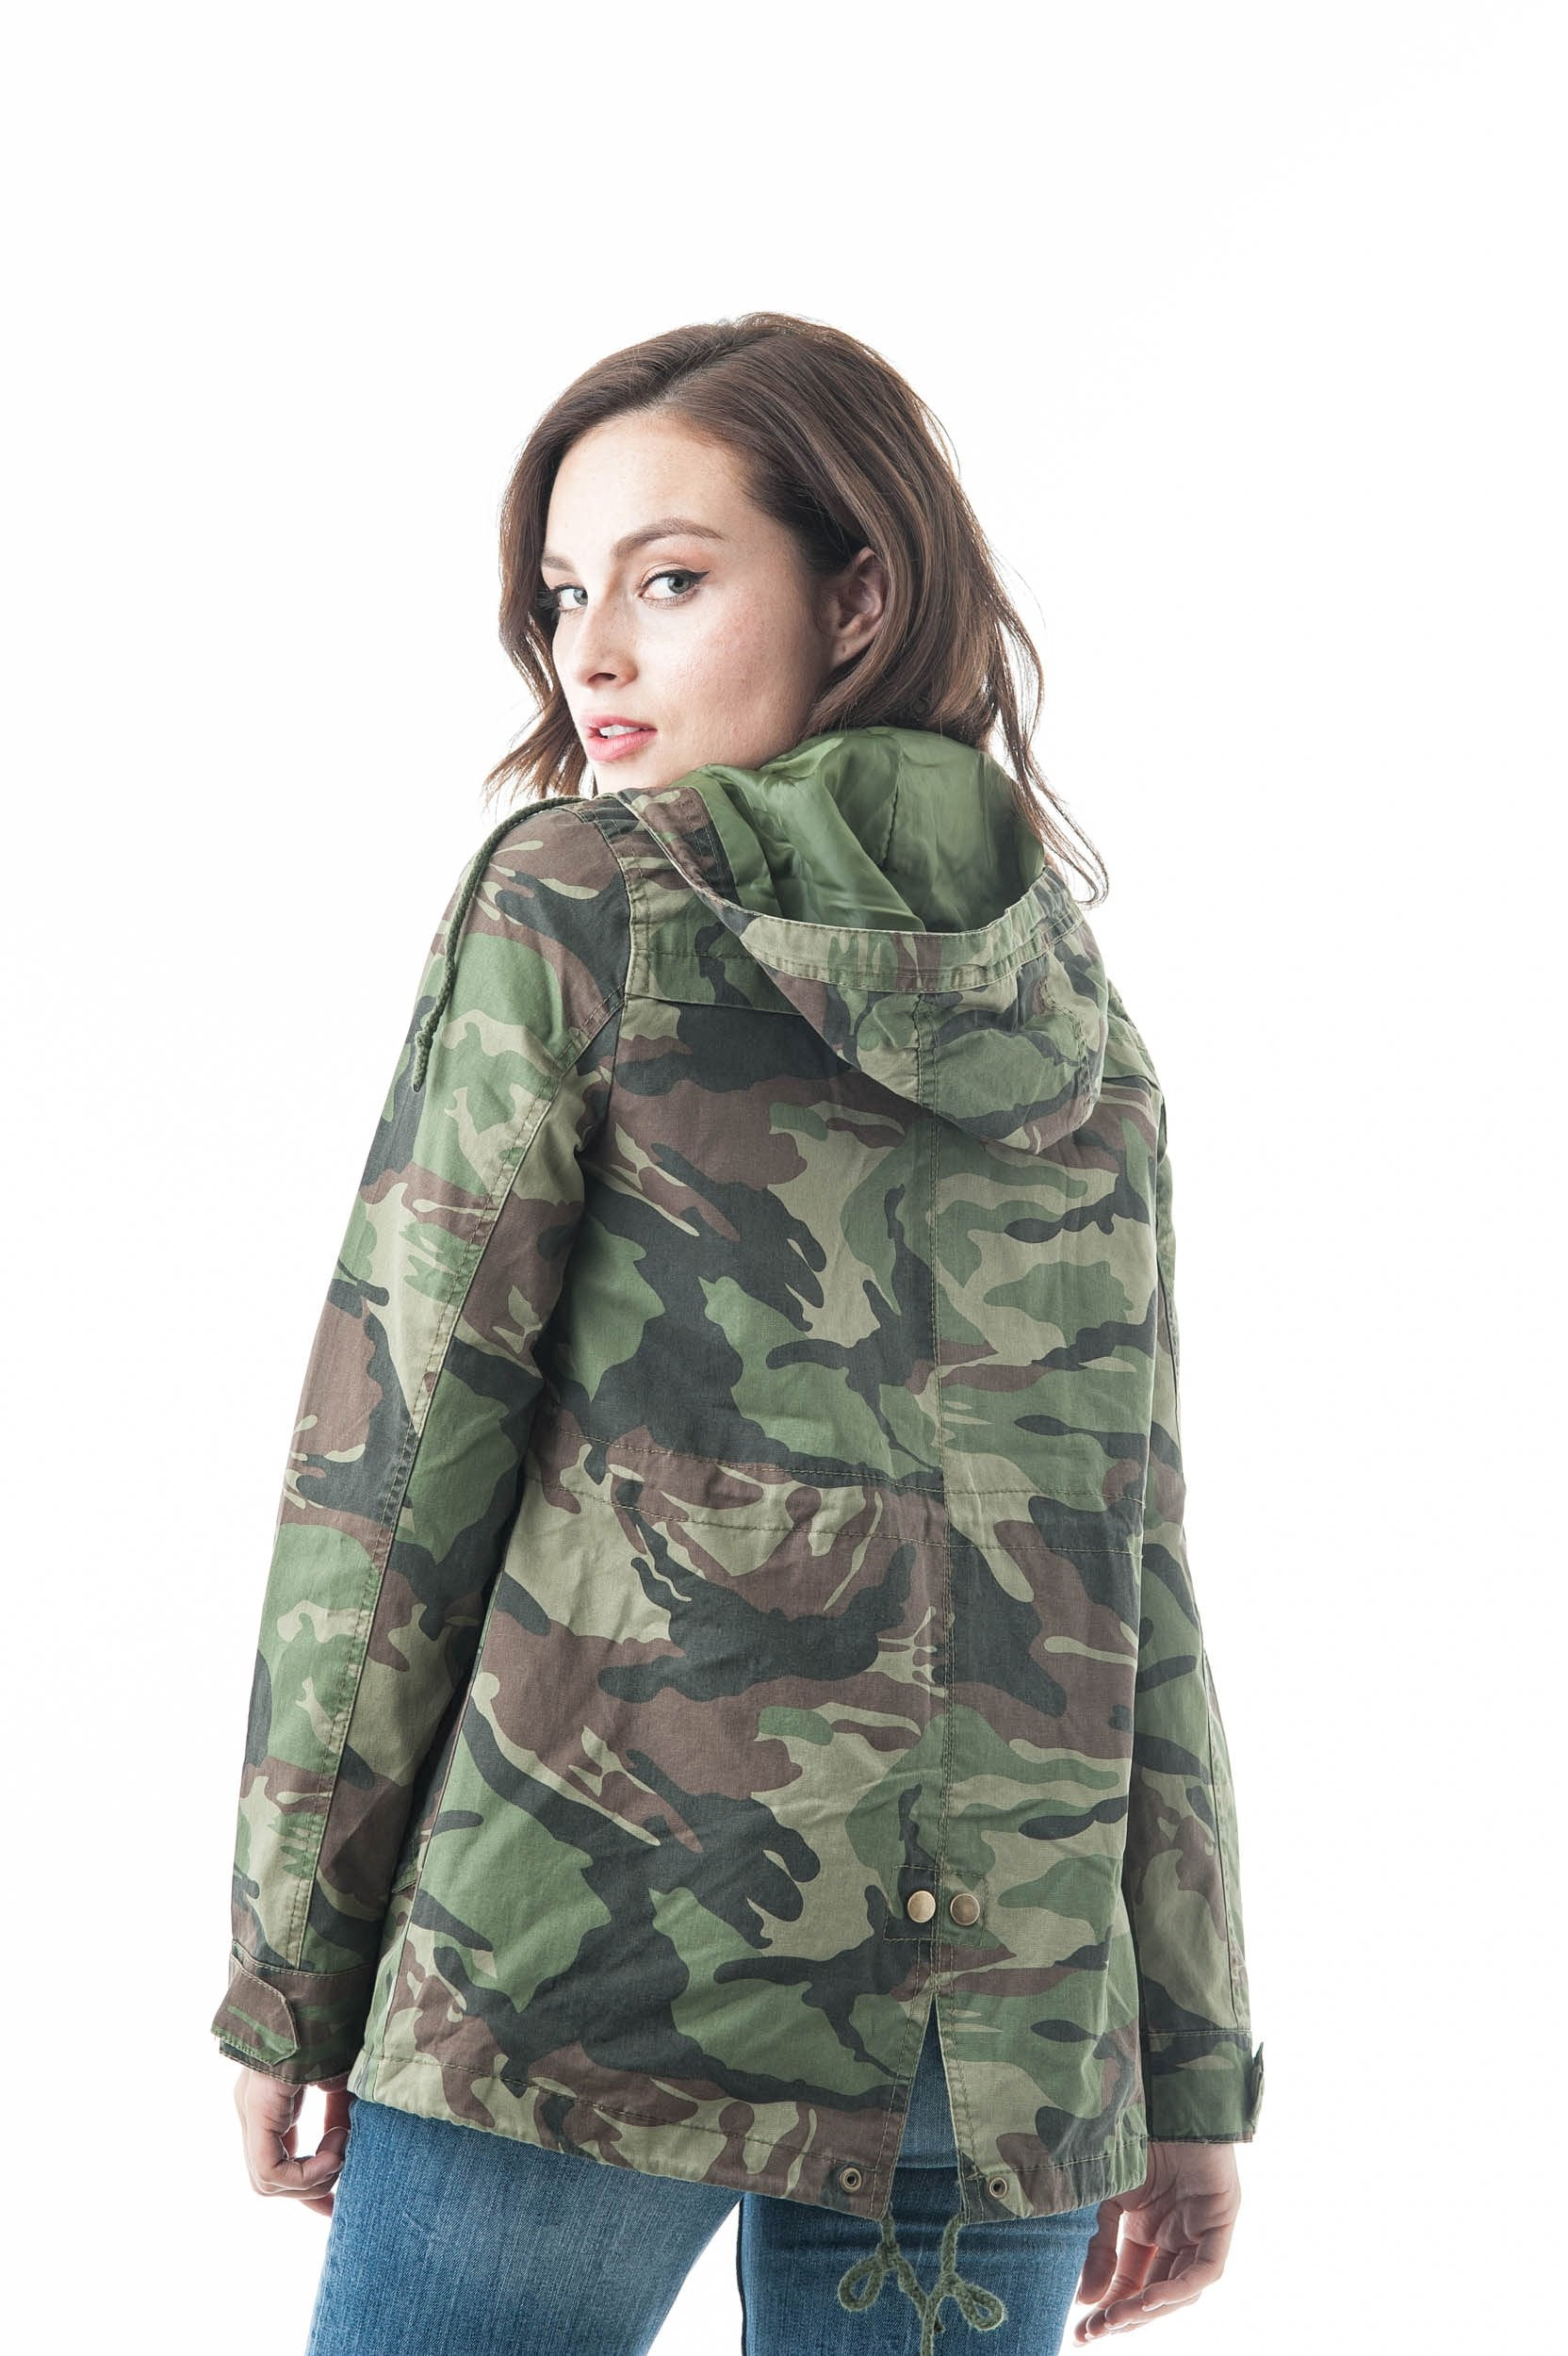 Hooded Long Sleeve Camo Print Utility Anorak Drawstring Waist Zipper Long Jacket